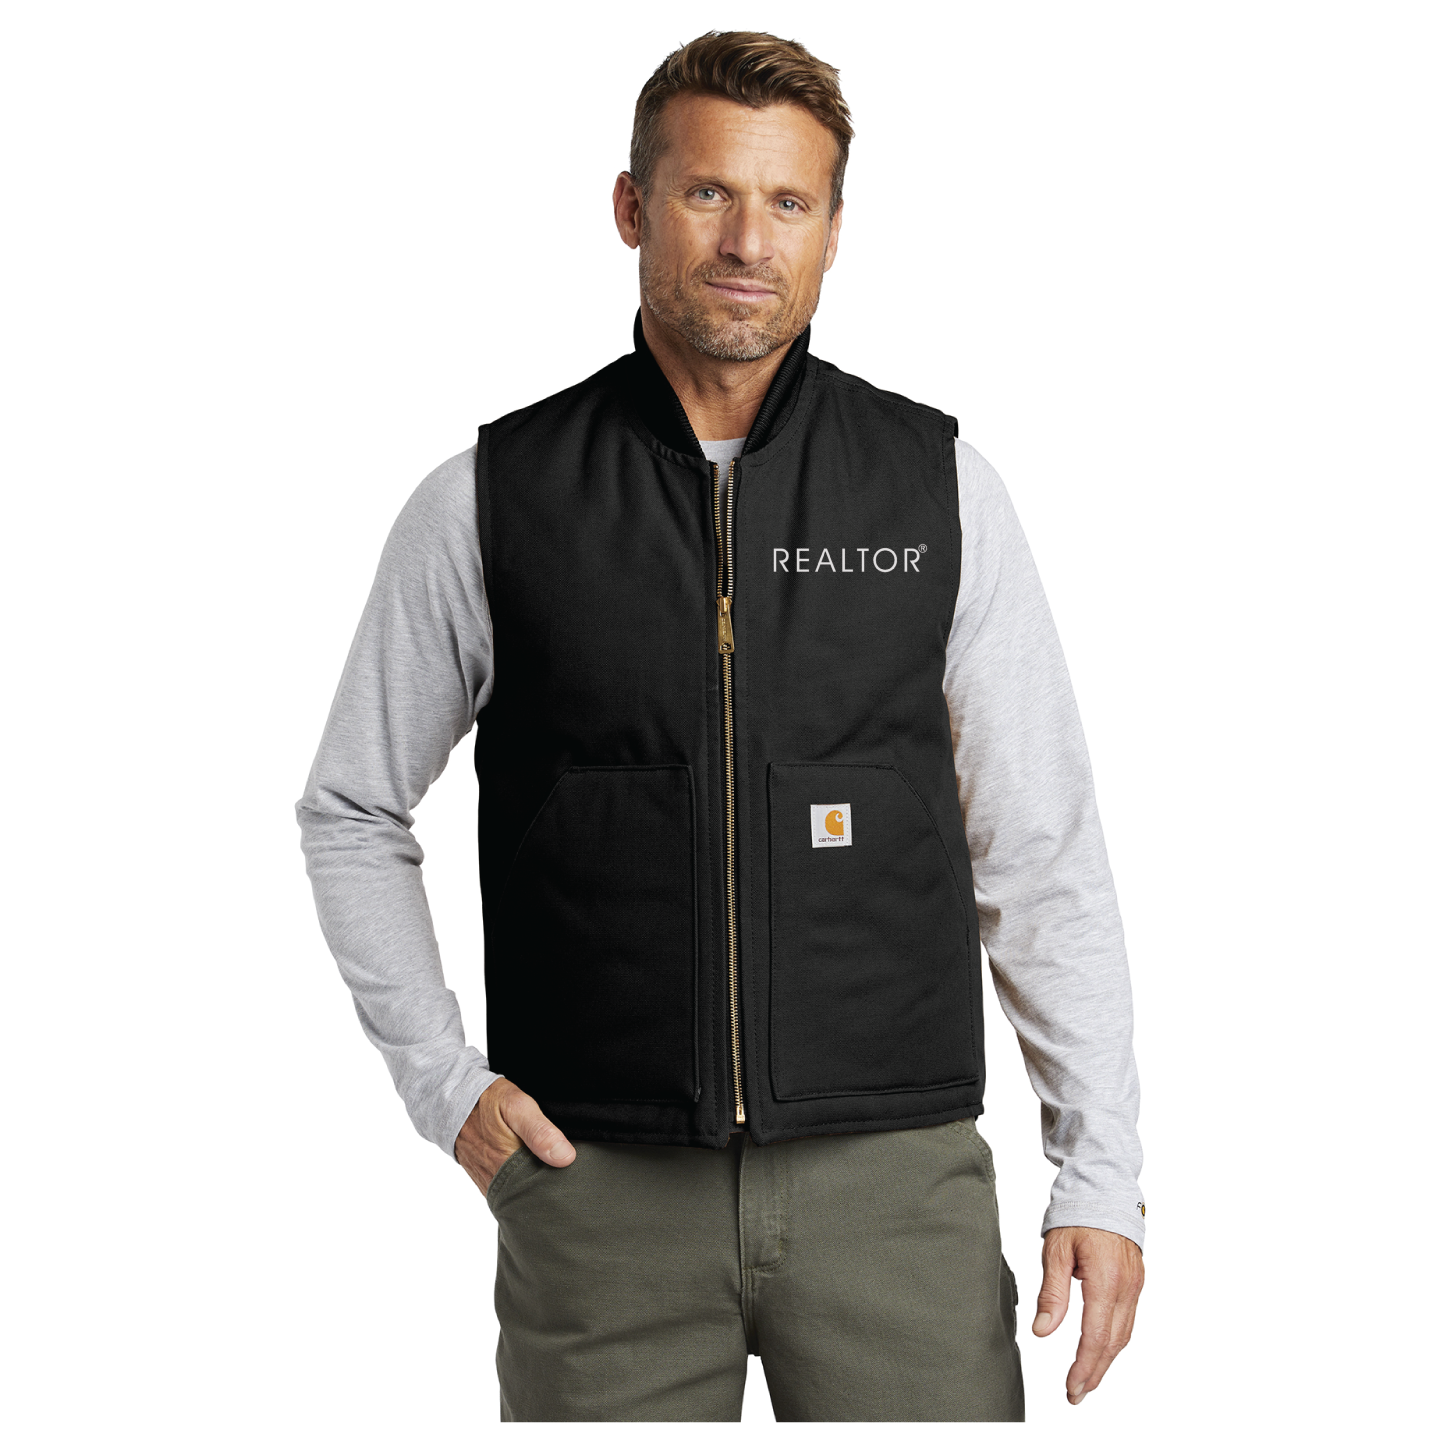 Carhartt® Duck Vest Vest, Jacket, Trending, Carhartt, Duck, Heavy, Mens, Industrial, Workwear, Construction